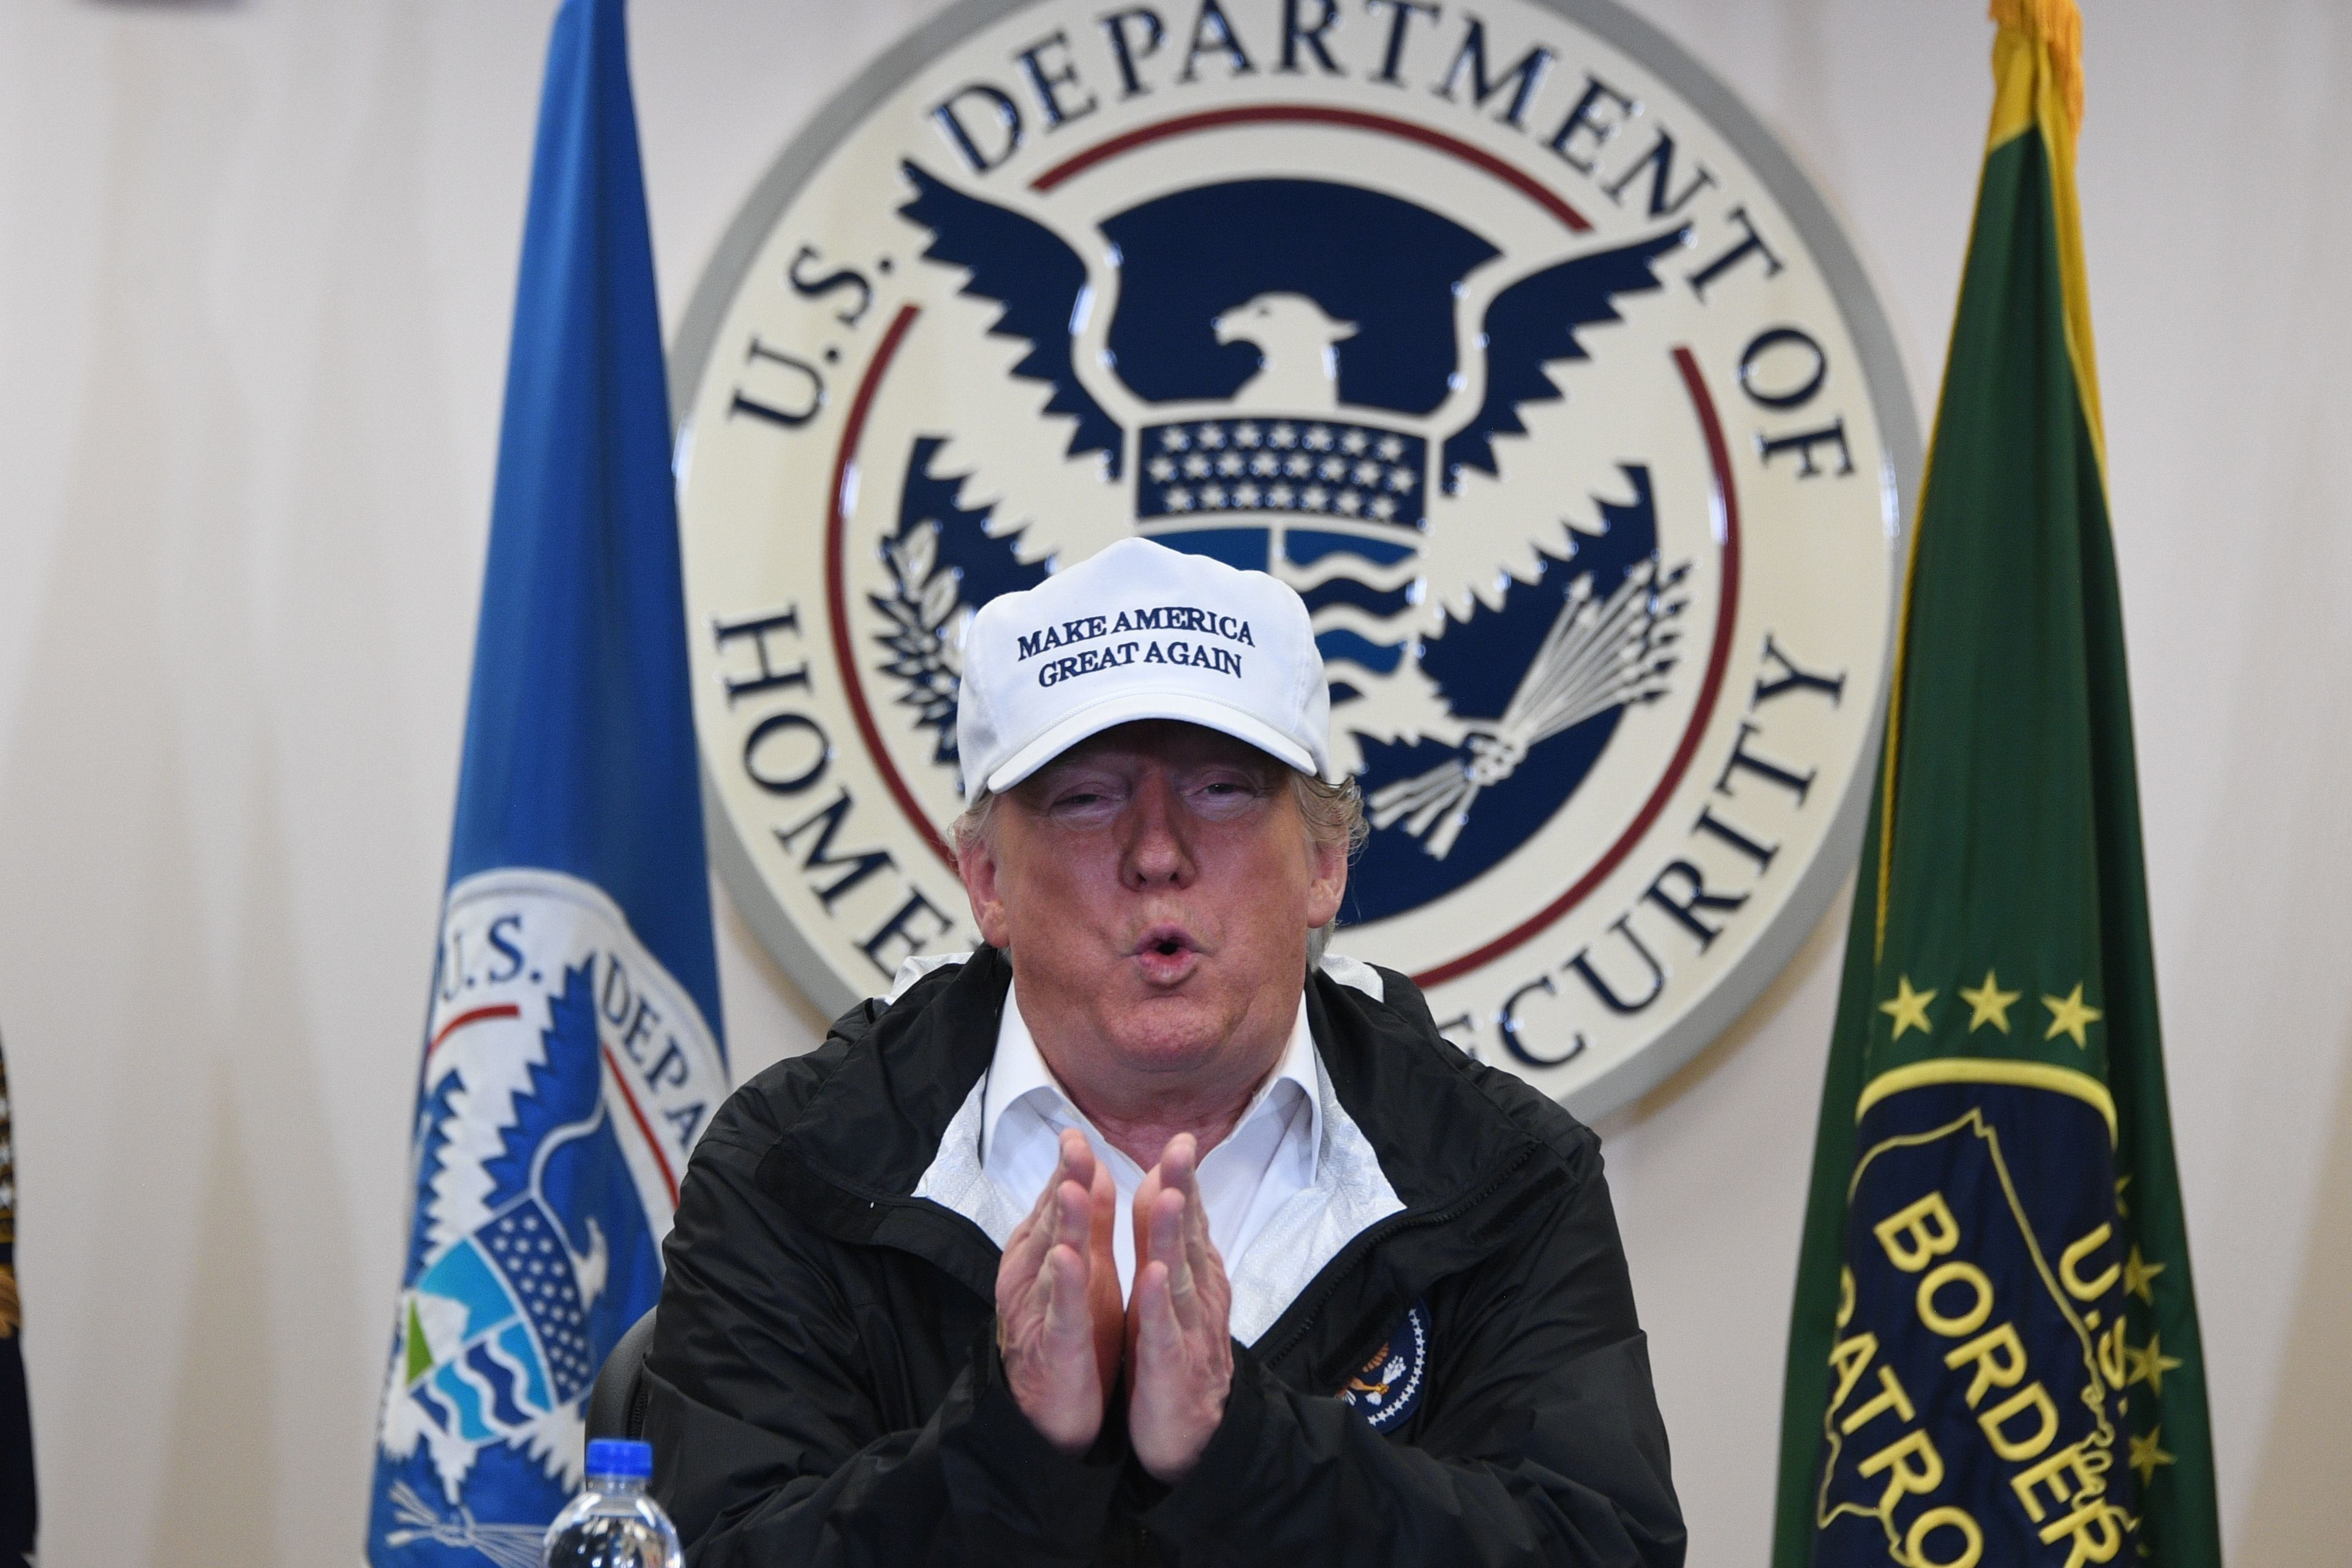 US President Donald Trump speaks during his visit to US Border Patrol McAllen Station in McAllen, Texas, on January 10, 2019. - Trump travels to the US-Mexico border as part of his all-out offensive to build a wall, a day after he stormed out of negotiations when Democratic opponents refused to agree to fund the project in exchange for an end to a painful government shutdown. (Photo by Jim WATSON / AFP)        (Photo credit should read JIM WATSON/AFP/Getty Images)